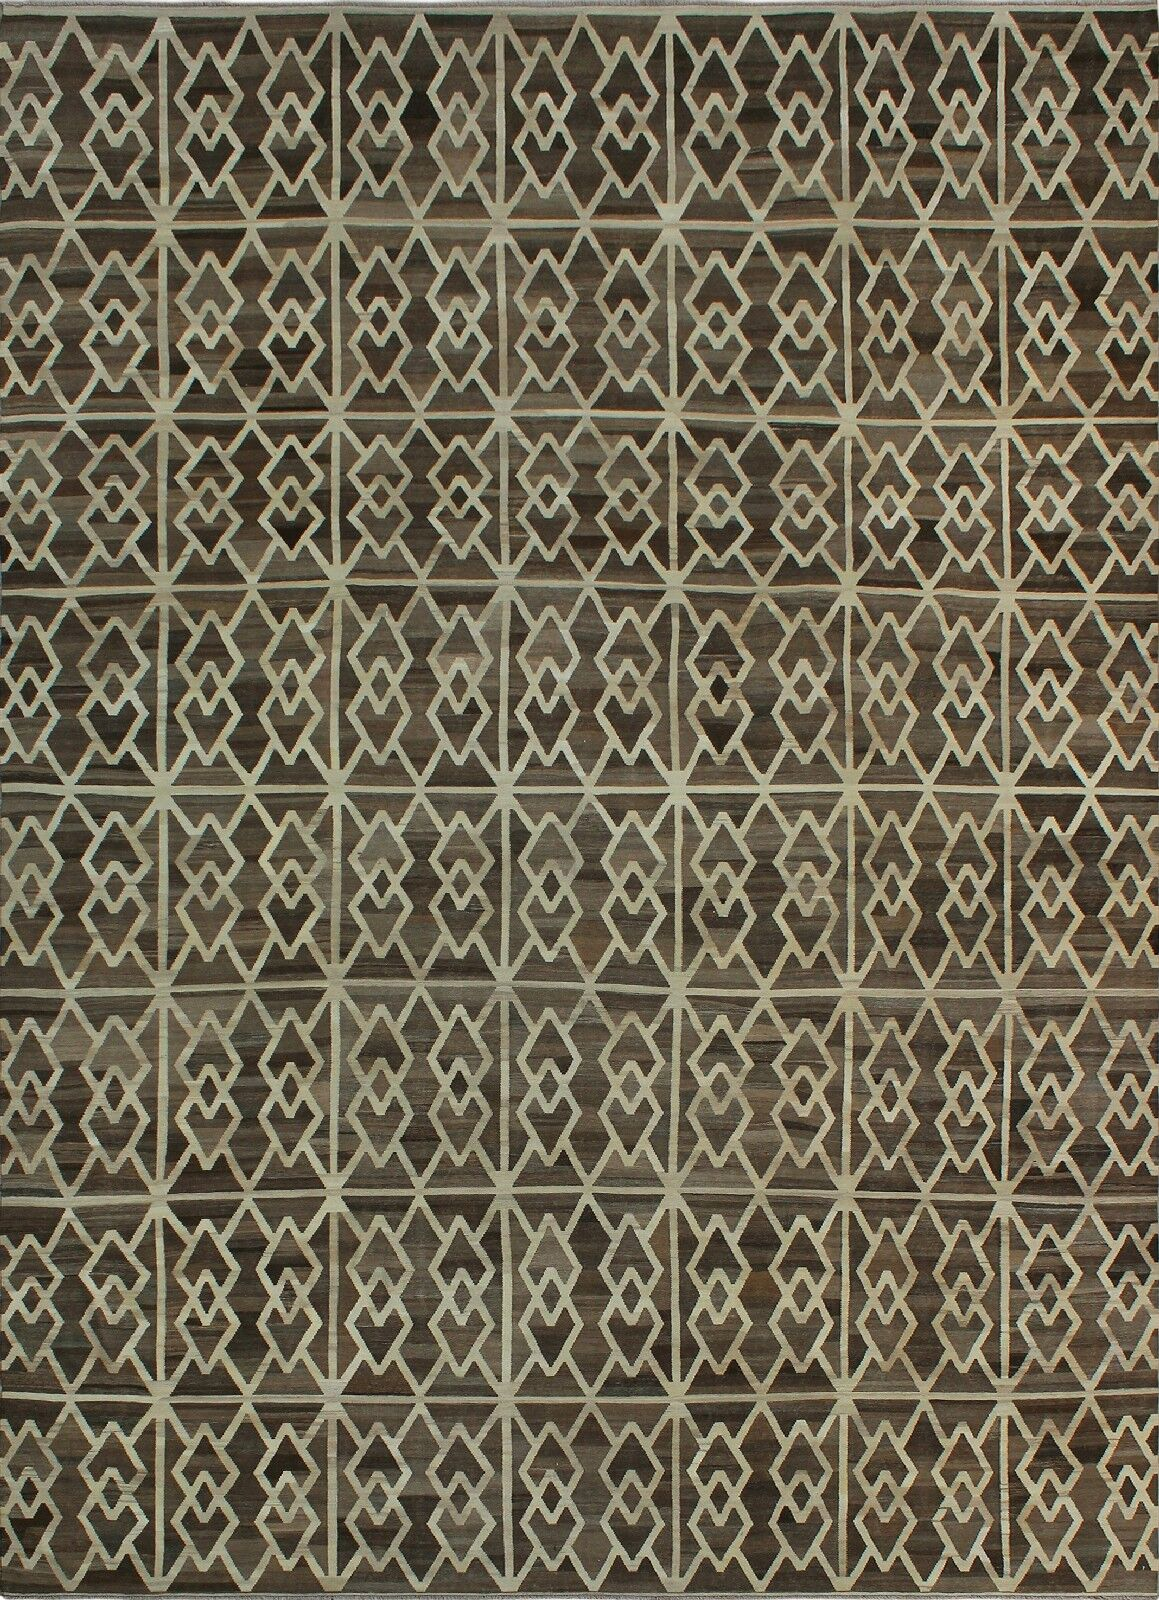 One-of-a-Kind Deb Kilim Hand-Woven Gray/Beige Are Rug